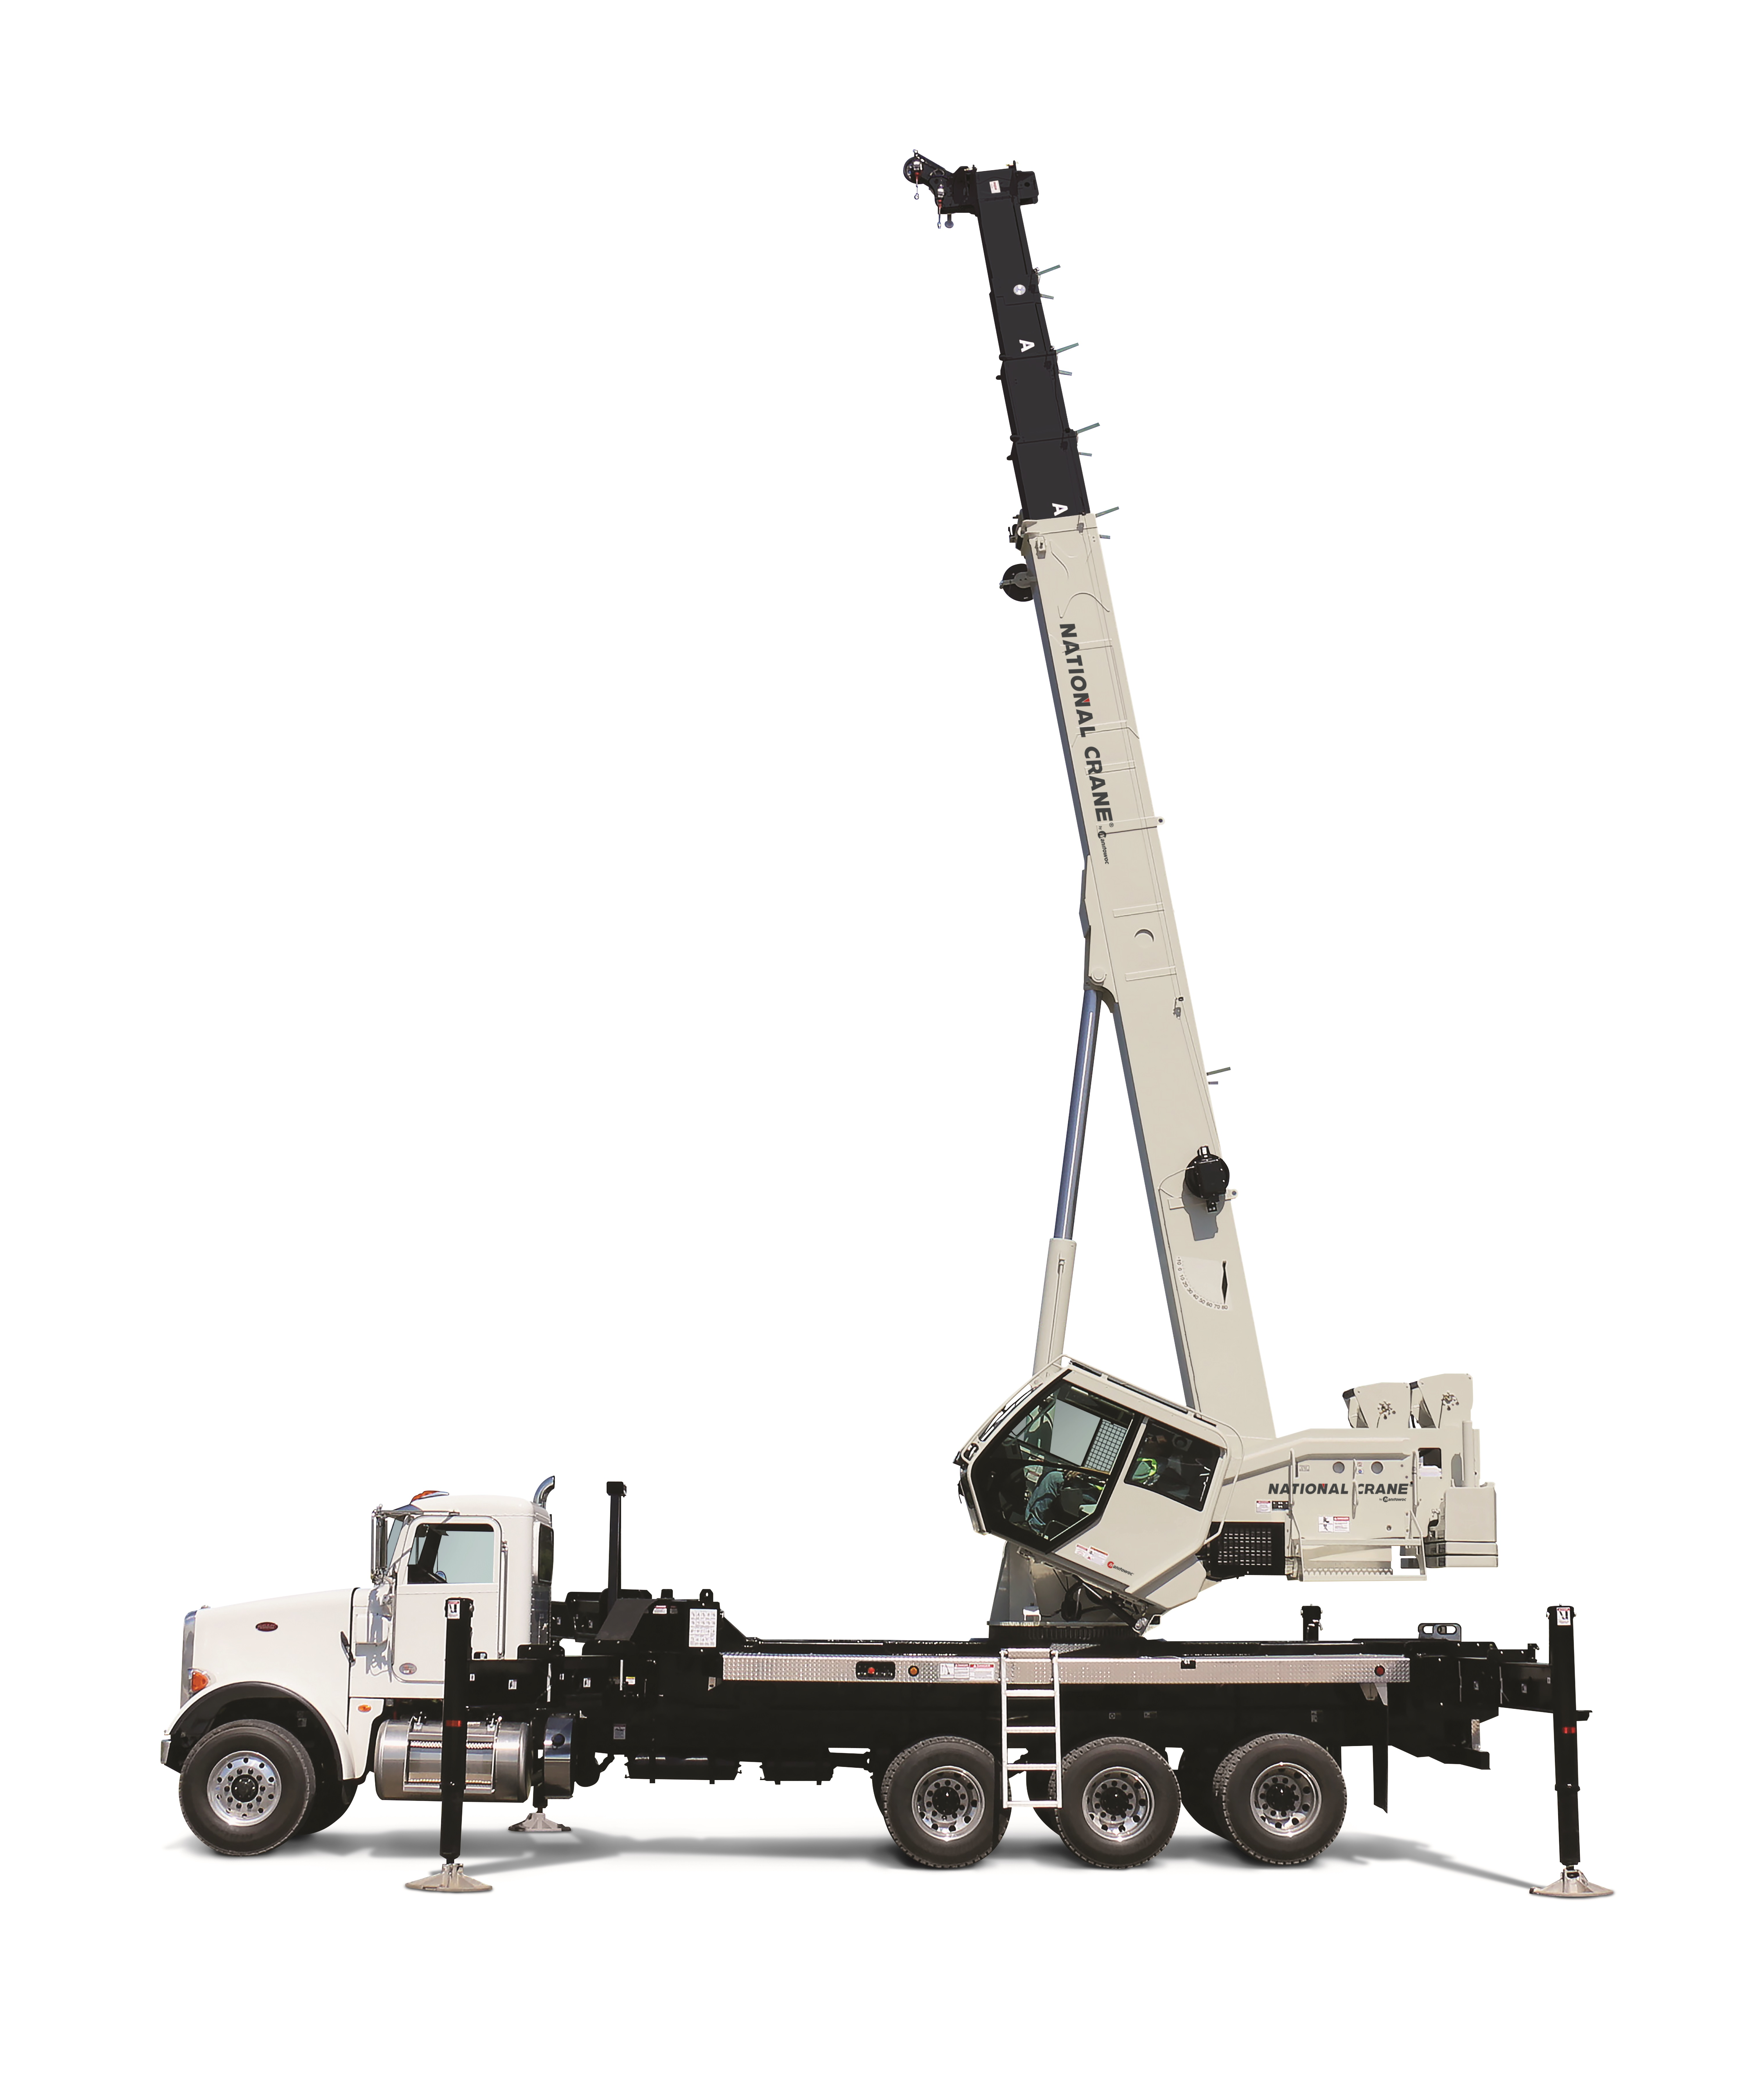 National Crane introduces the NTC55, an evolved truck crane with the reach and capacity of a boom truck